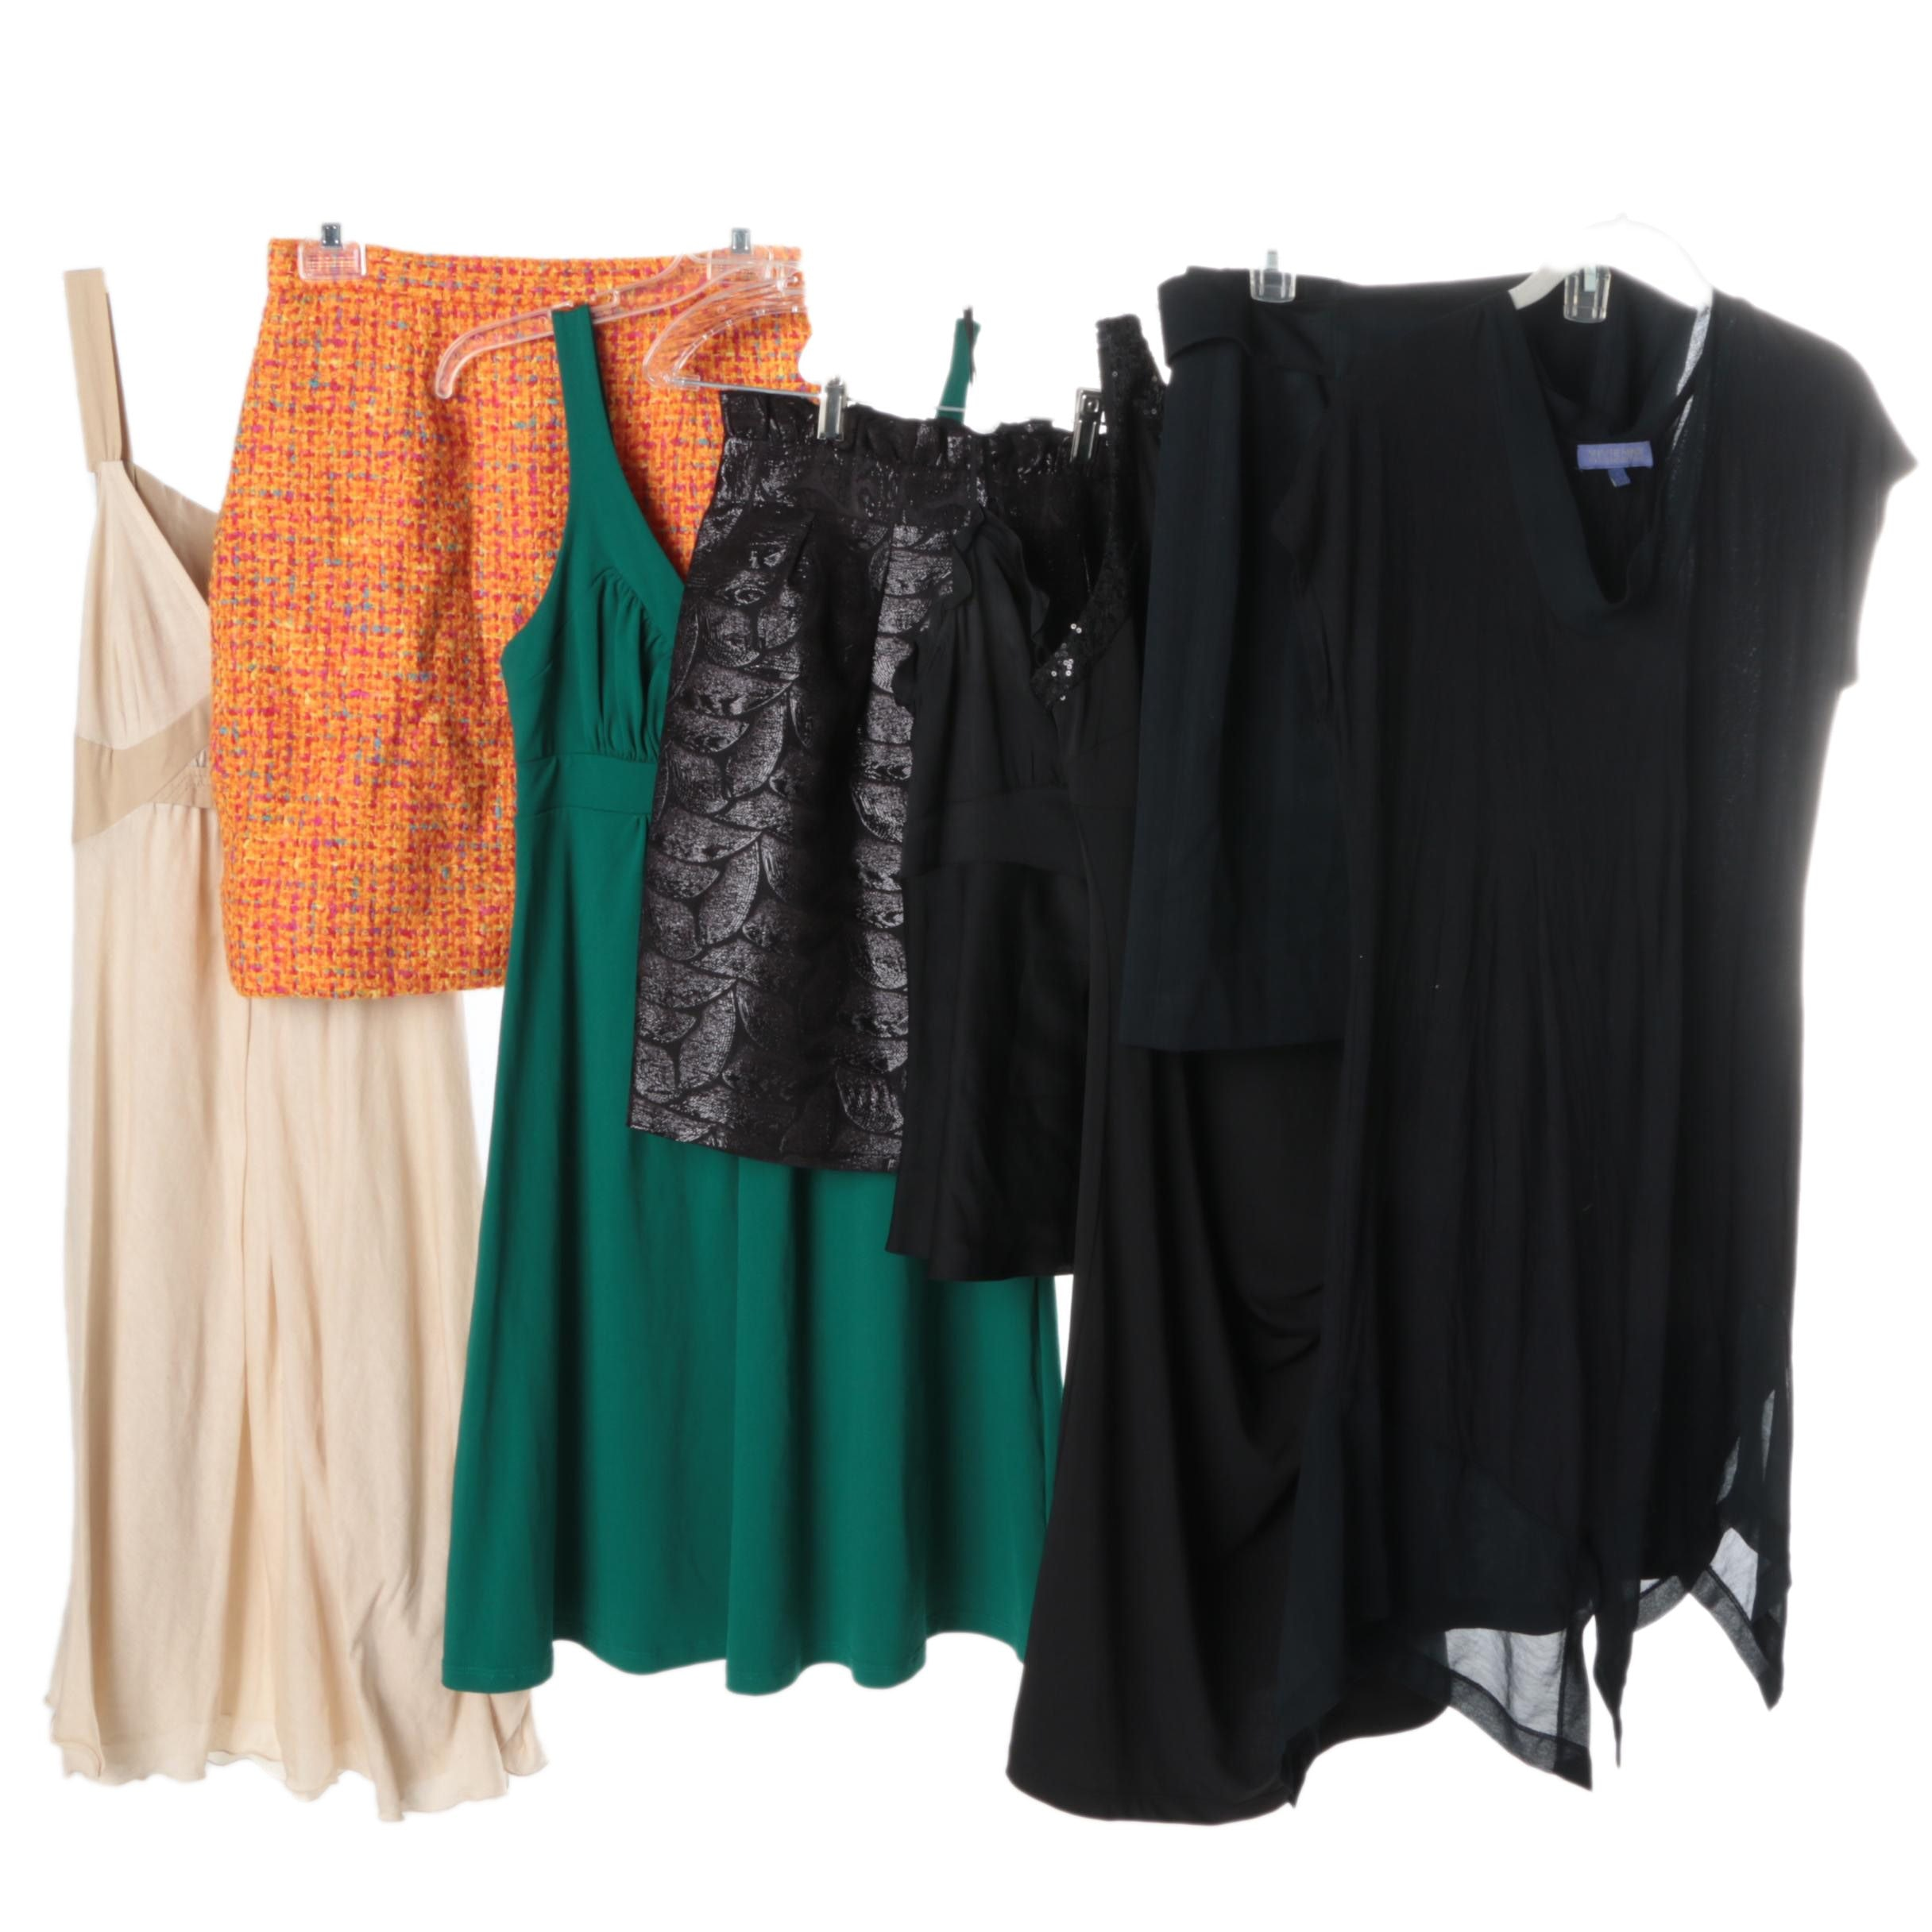 Women's Dresses, Skirts and Blouses Including Philosophy di Alberta Ferretti